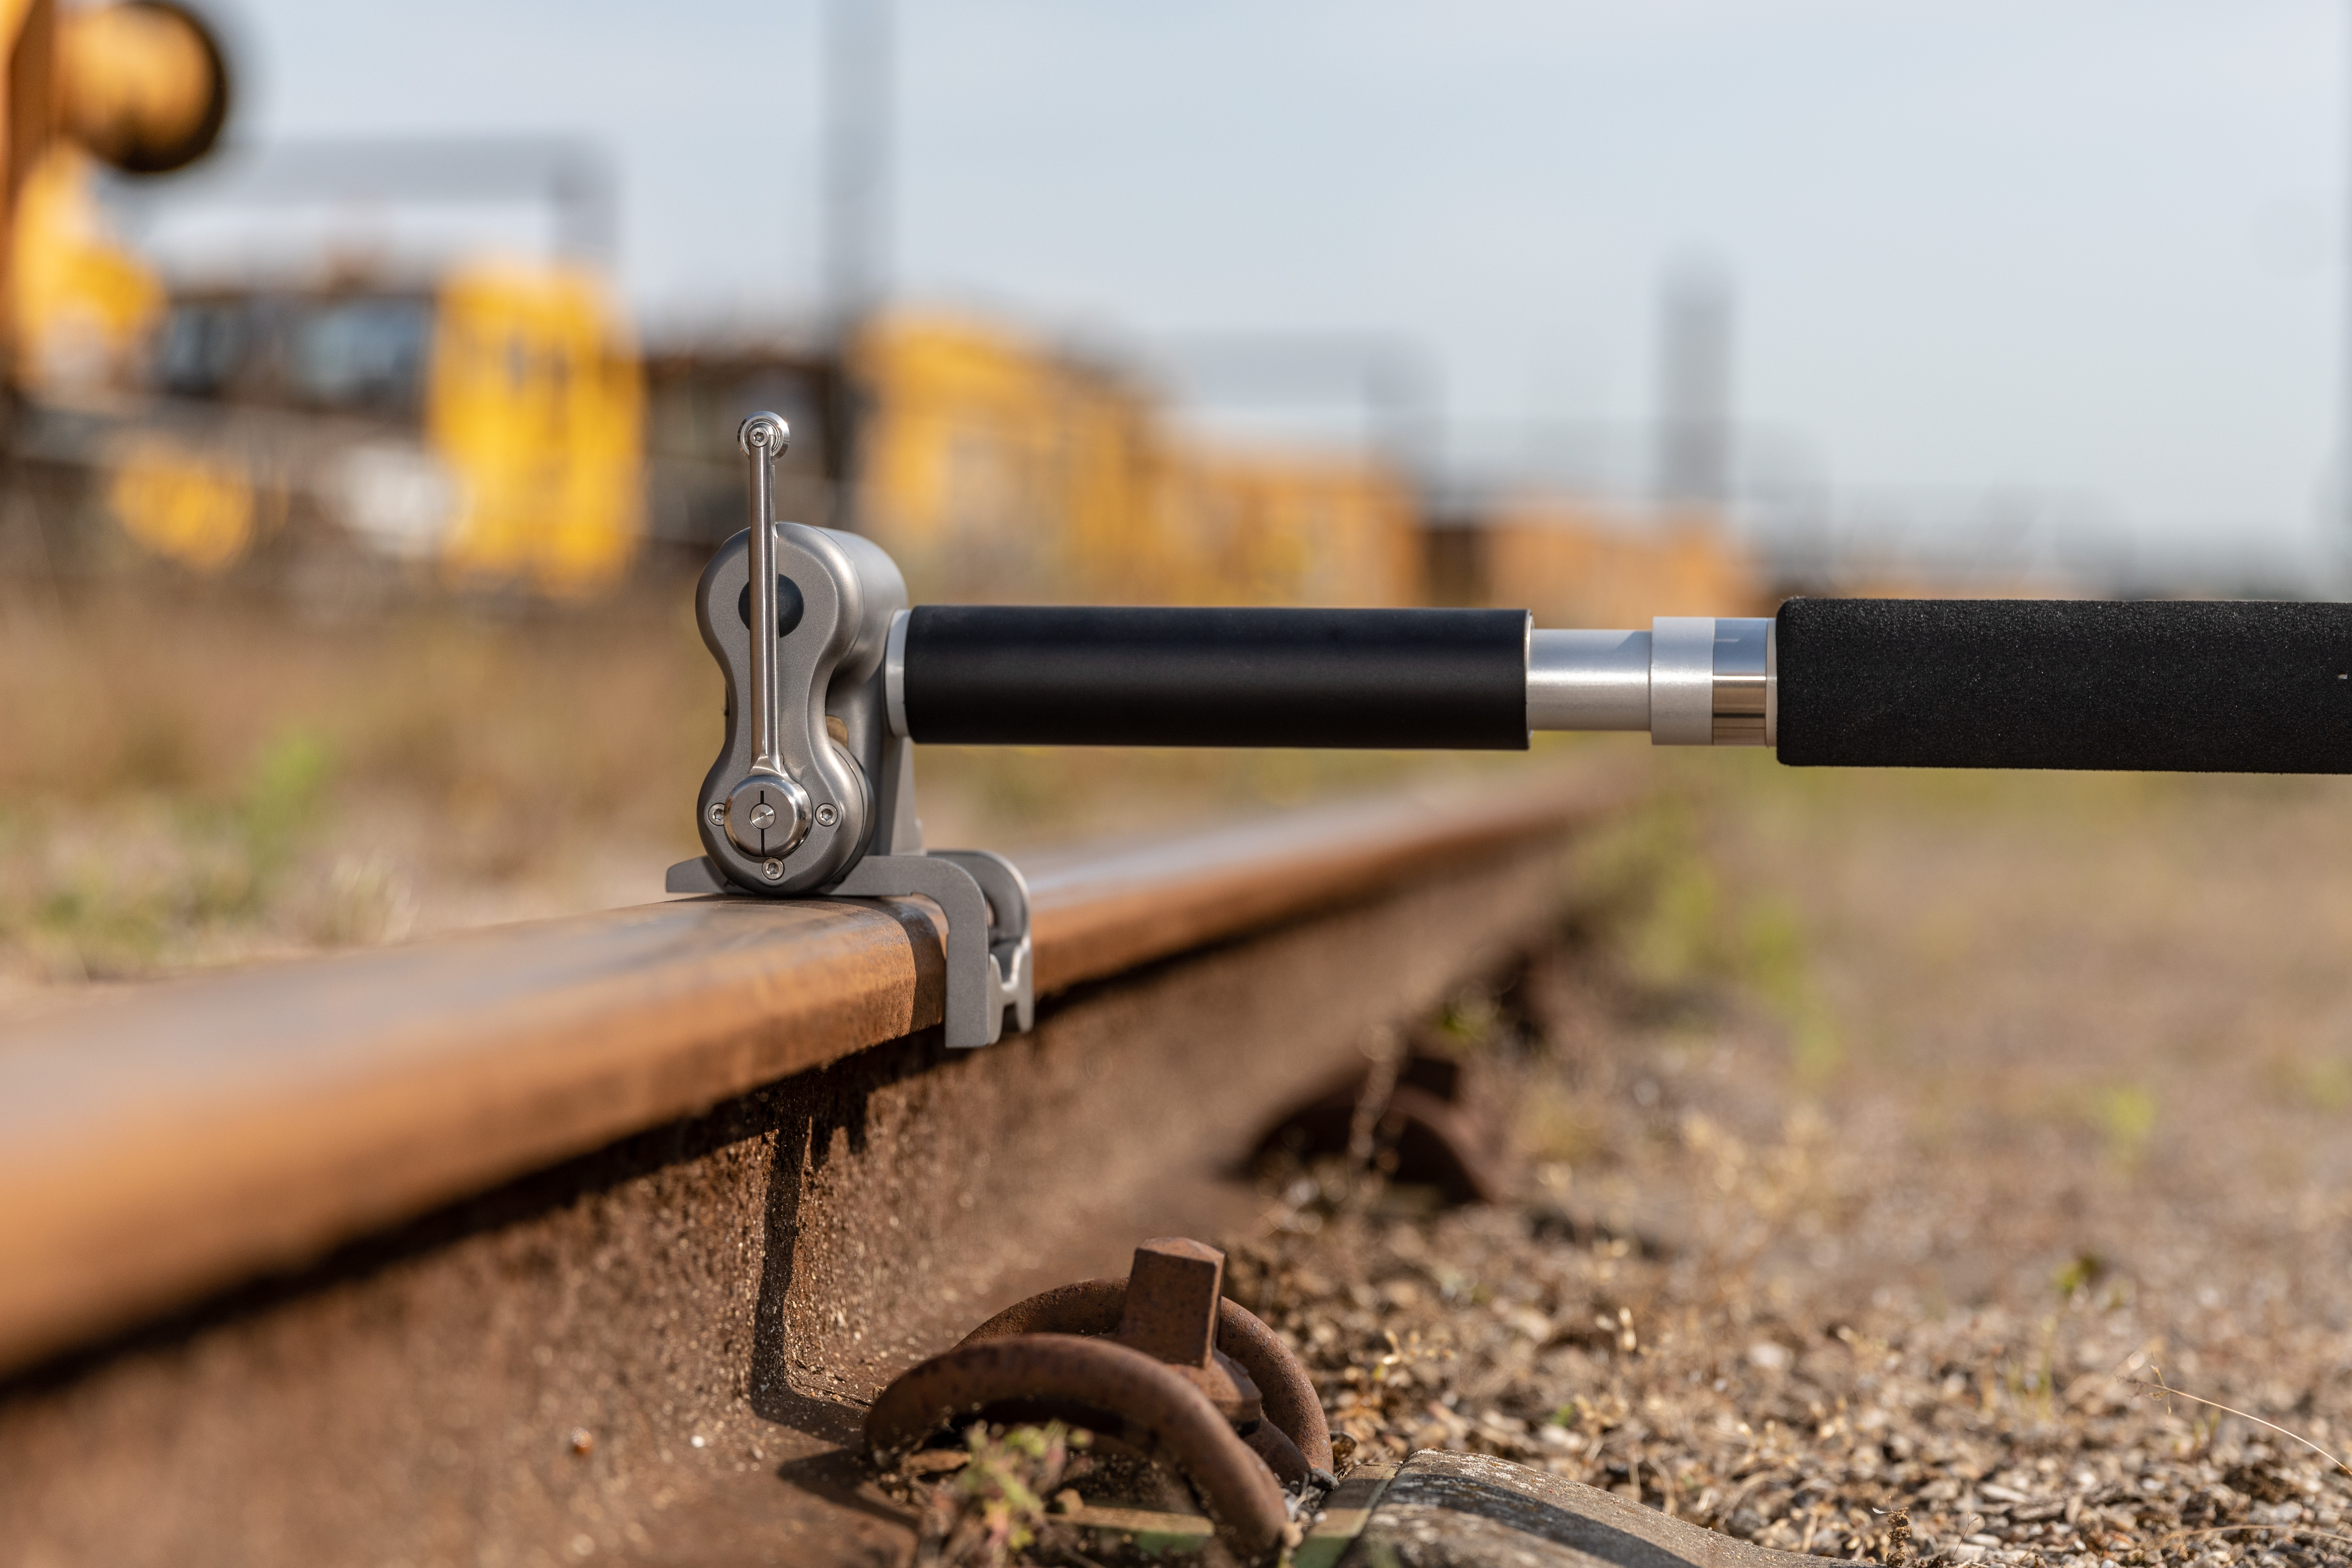 Close-up of the MiniProf BT Rail unit in use. The unit sits on the rail, ready for the measuring wheel to take the rail's profile.